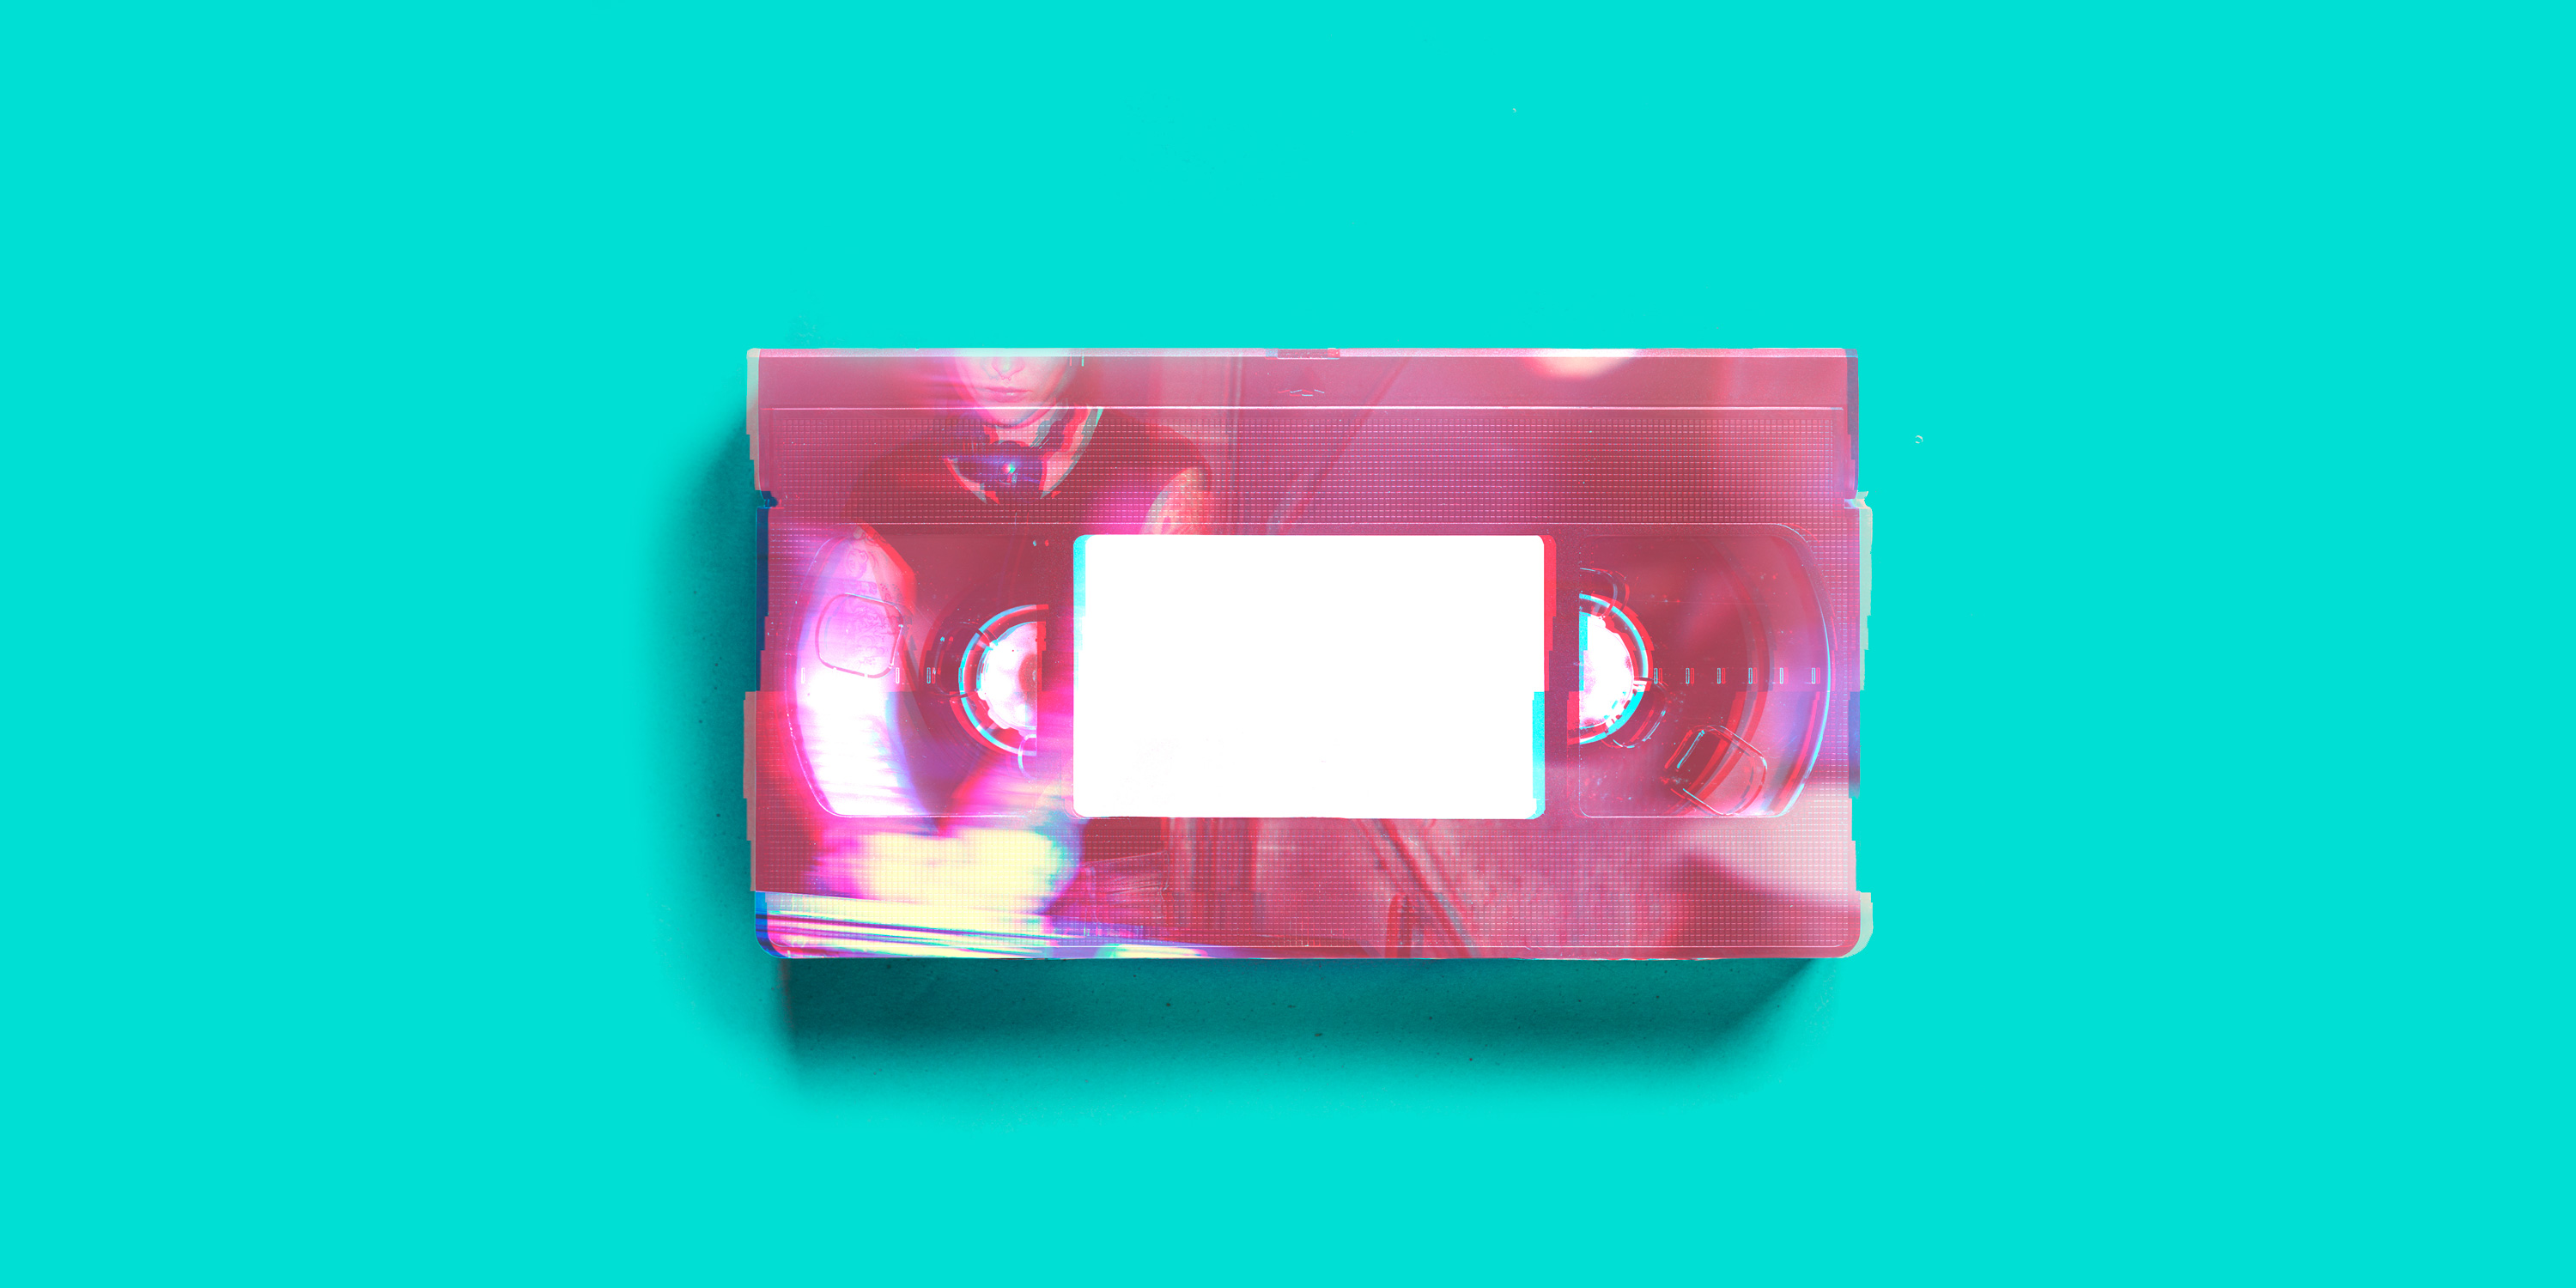 How to Get Rid of VHS Tapes | STANFORD magazine